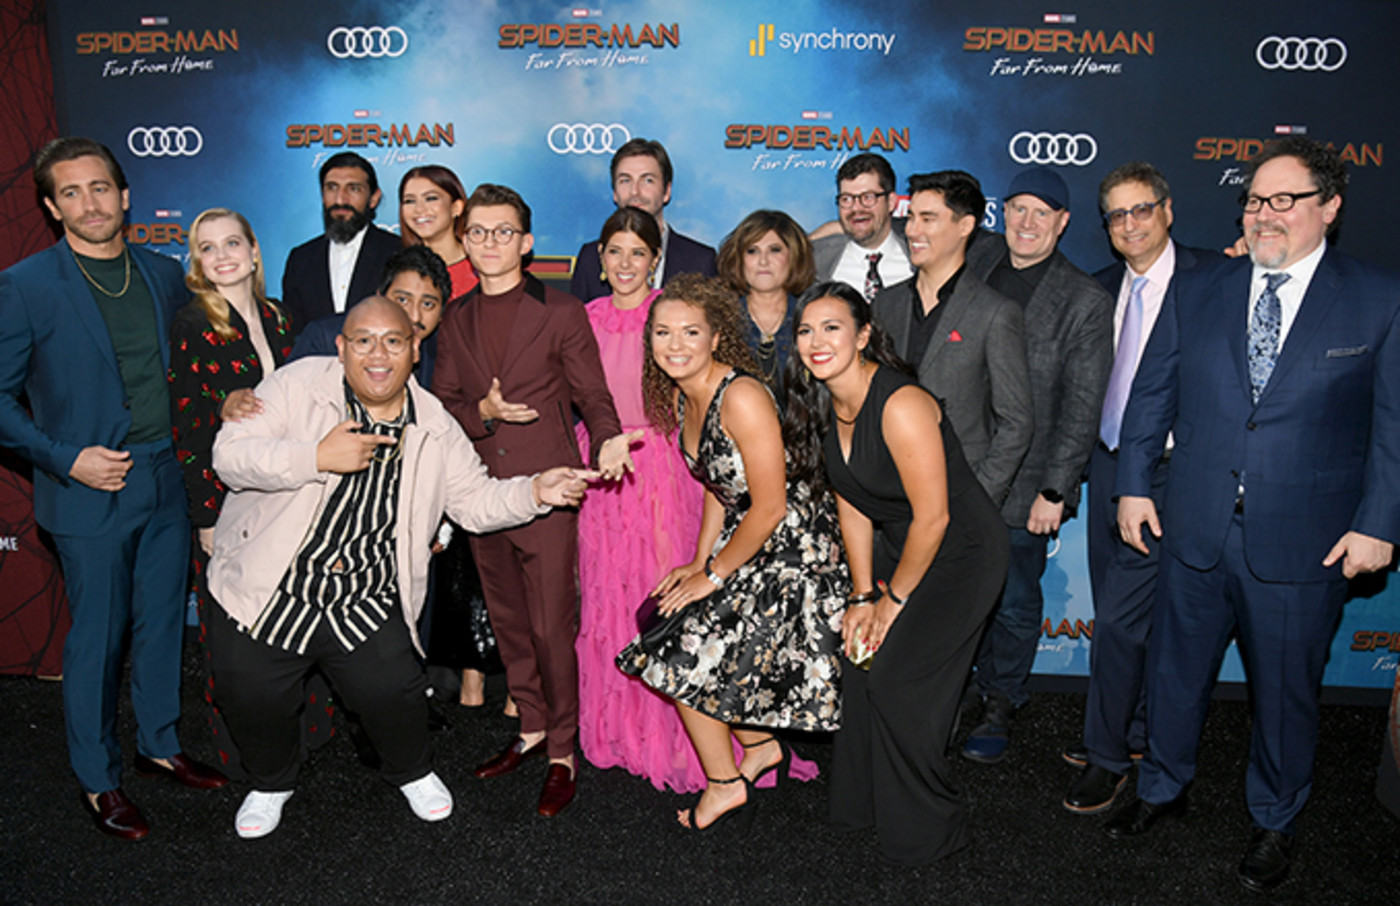 Spider-Man cast and producers during happier days.